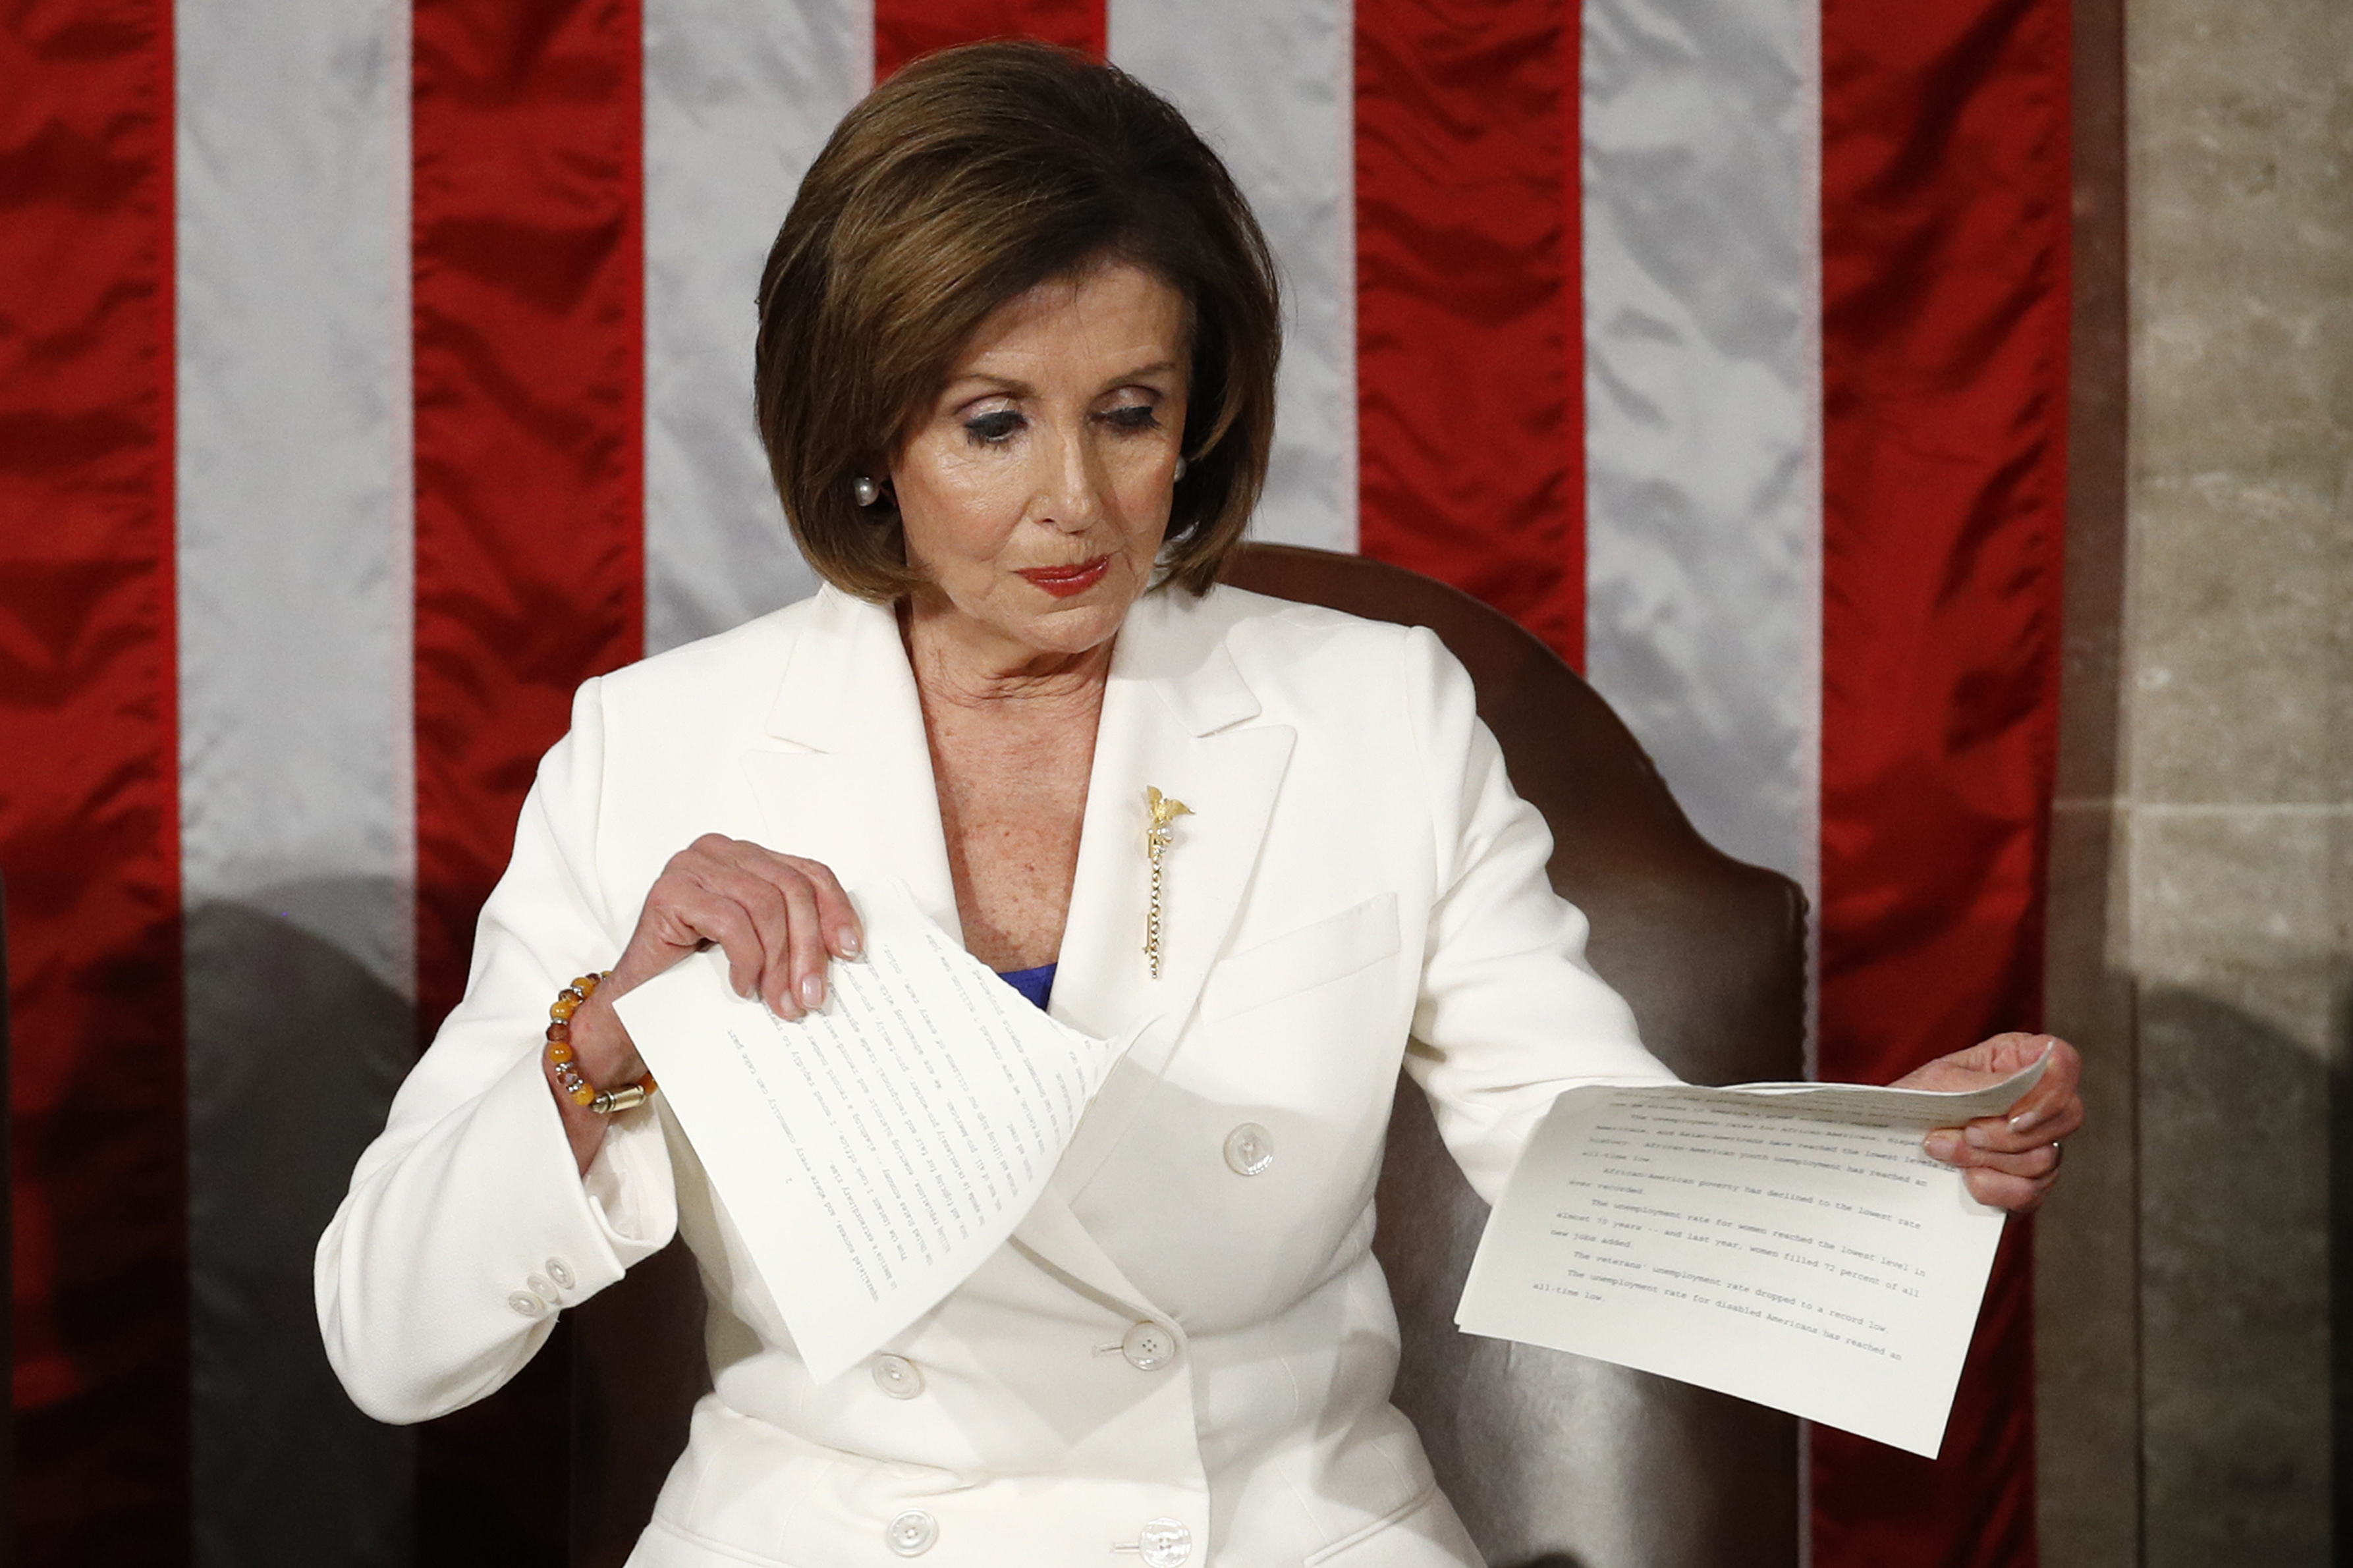 PolitiFact: Did Nancy Pelosi break the law by ripping Trump's State of the  Union speech?